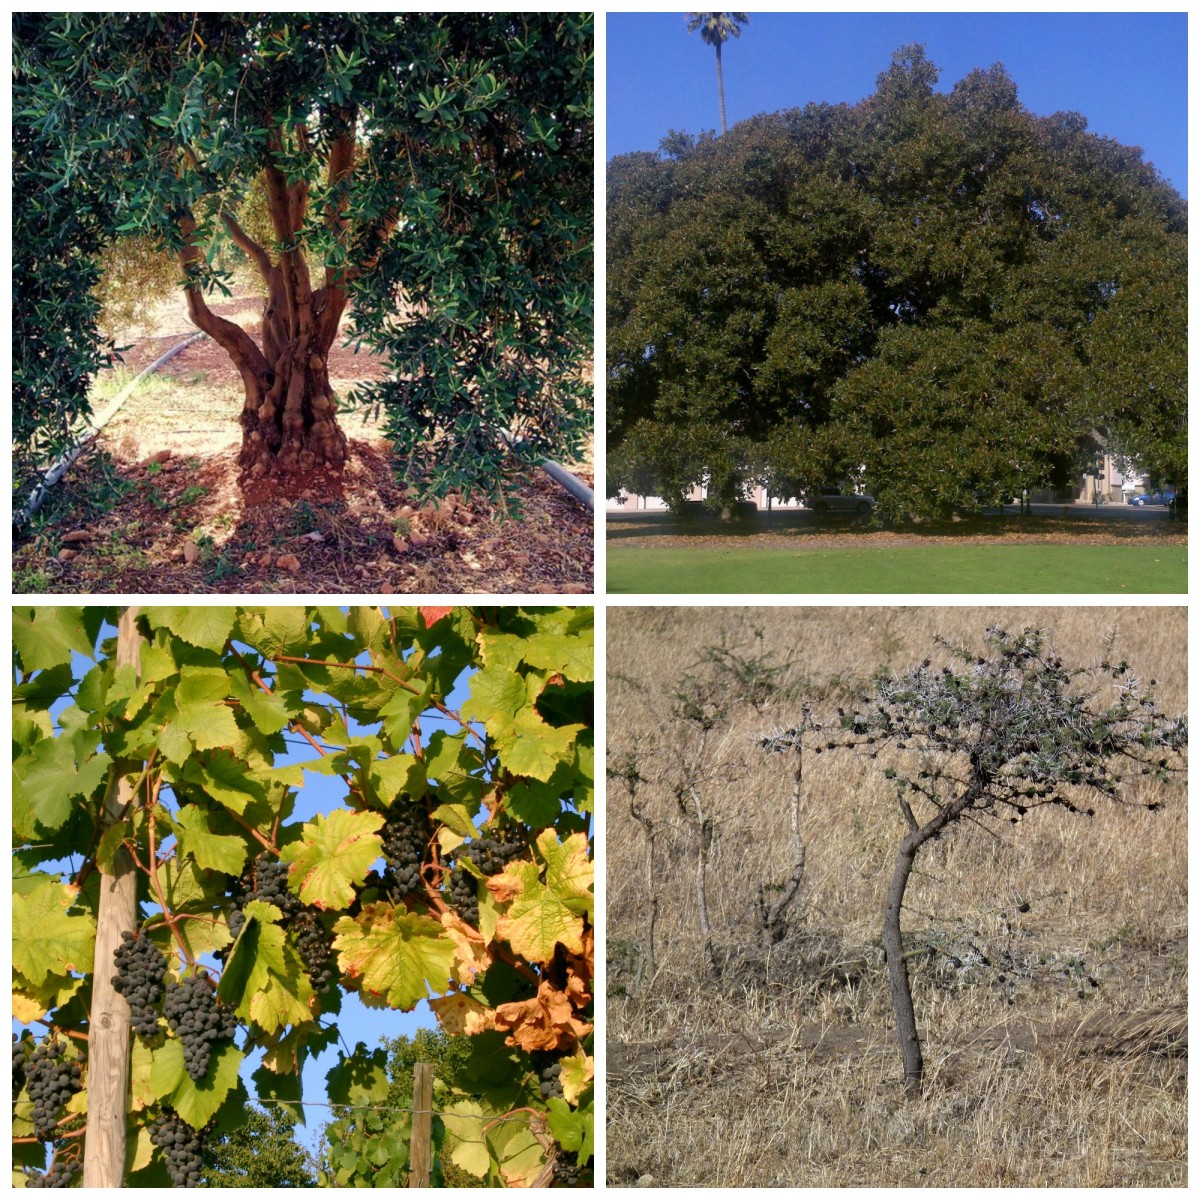 Olive tree Al-Chami, Fig tree Fettlemap, Grapevine? and thornbush by Neut Dilma